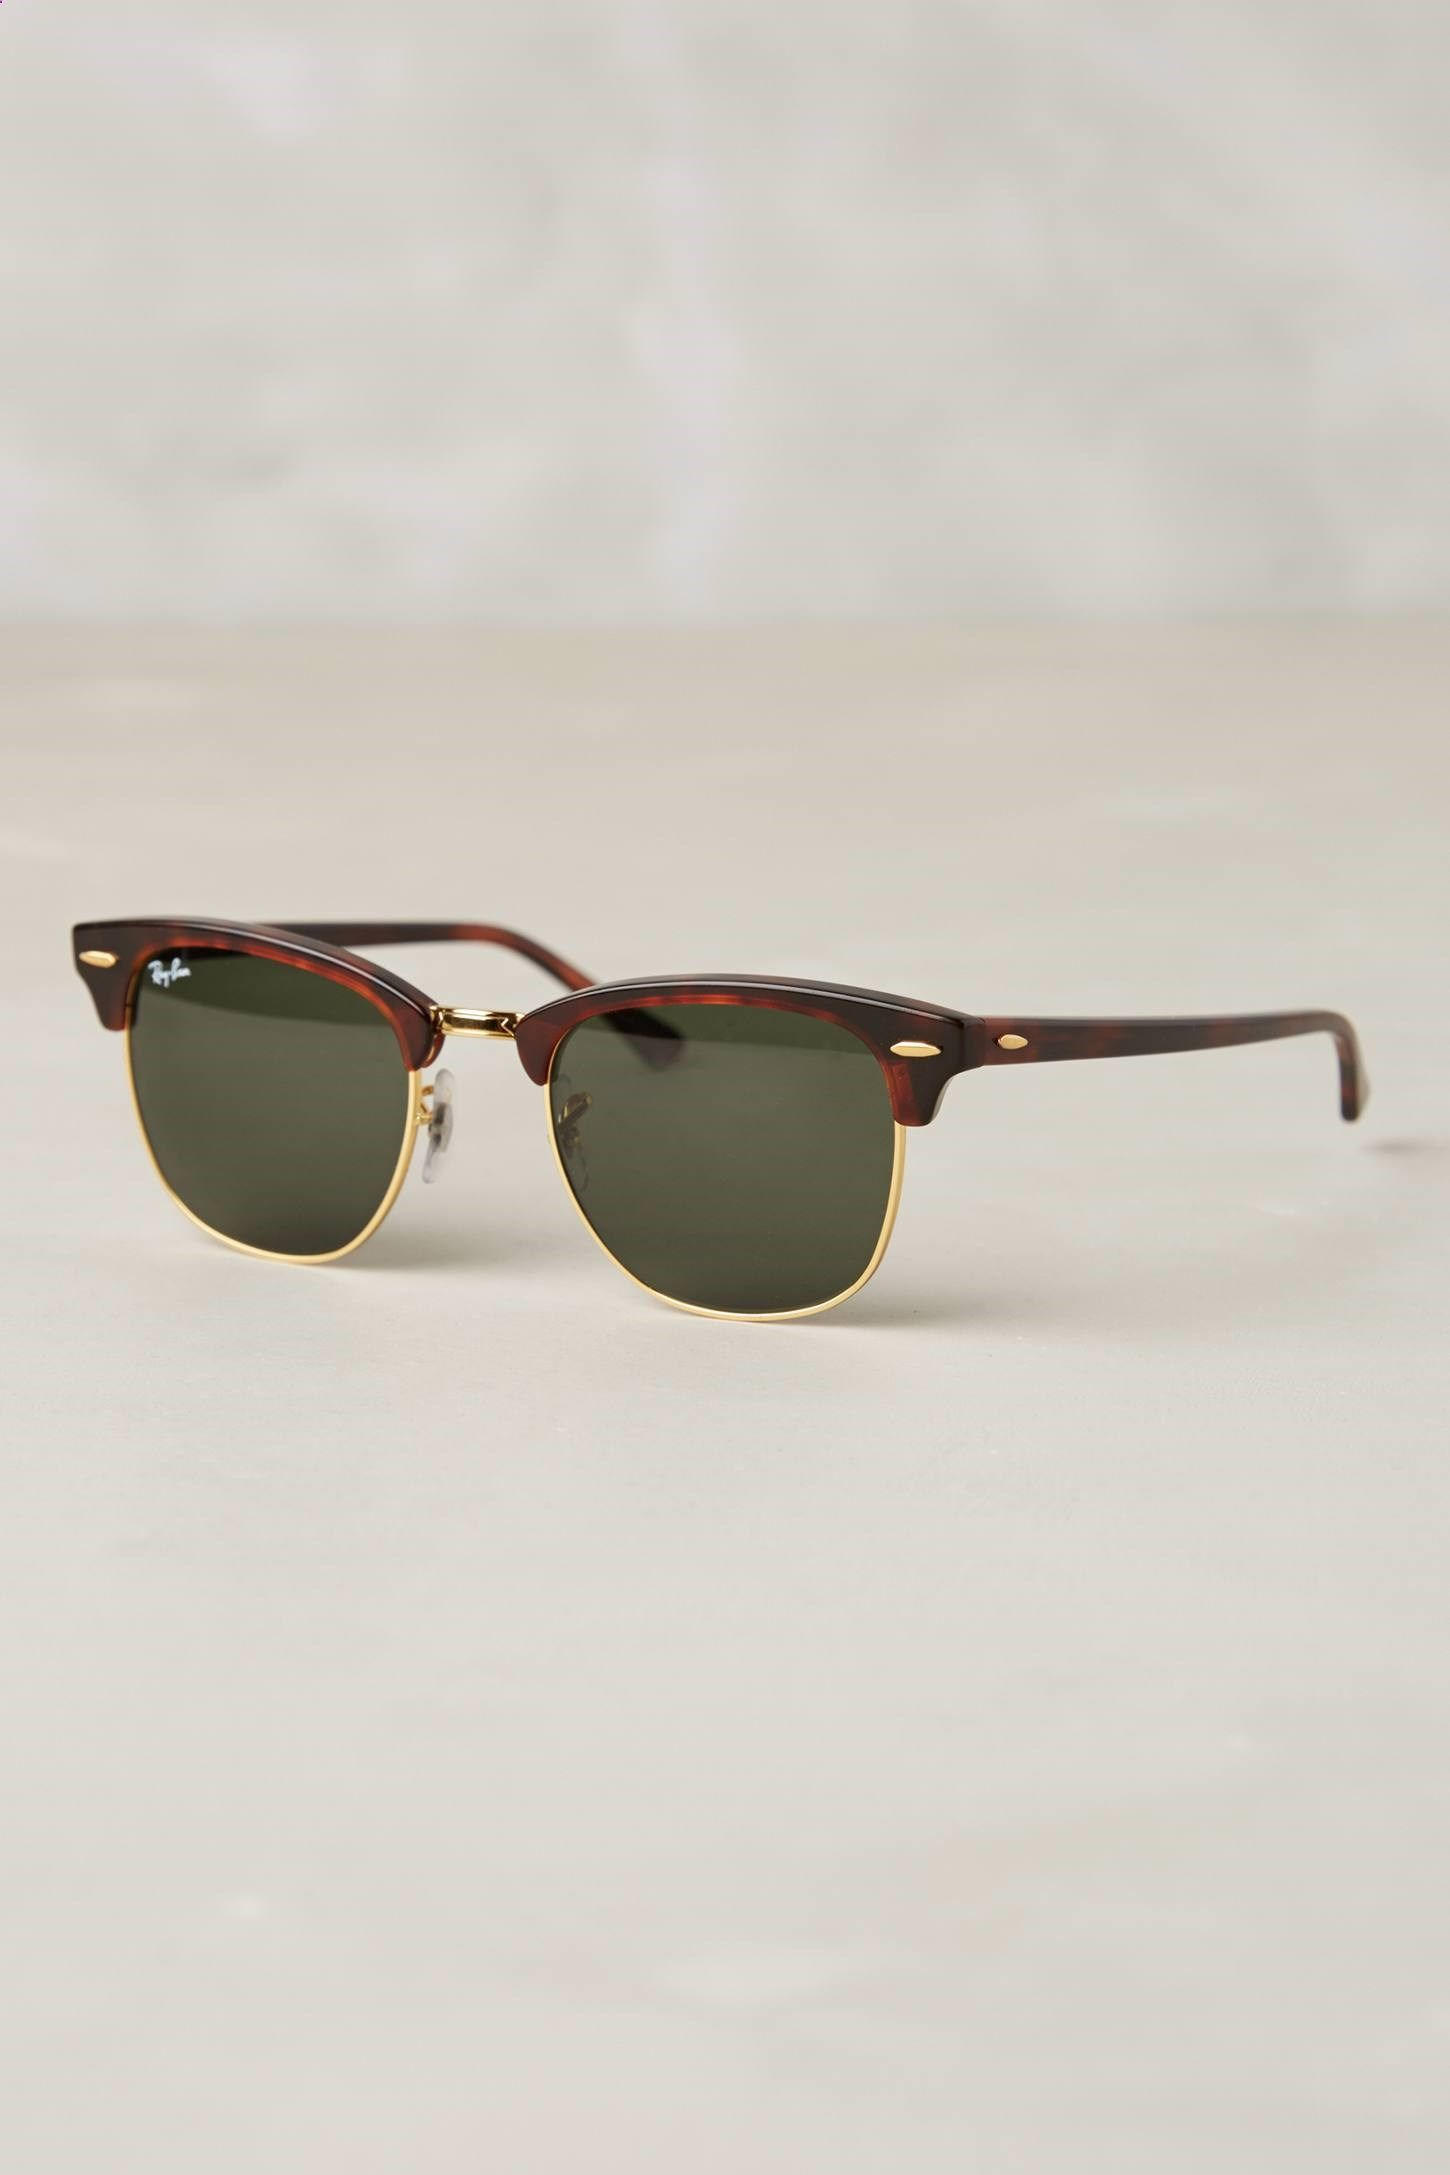 Rayban  WhatSheWants Are The Best Gift For Your Lover   street ... a6a966c64a